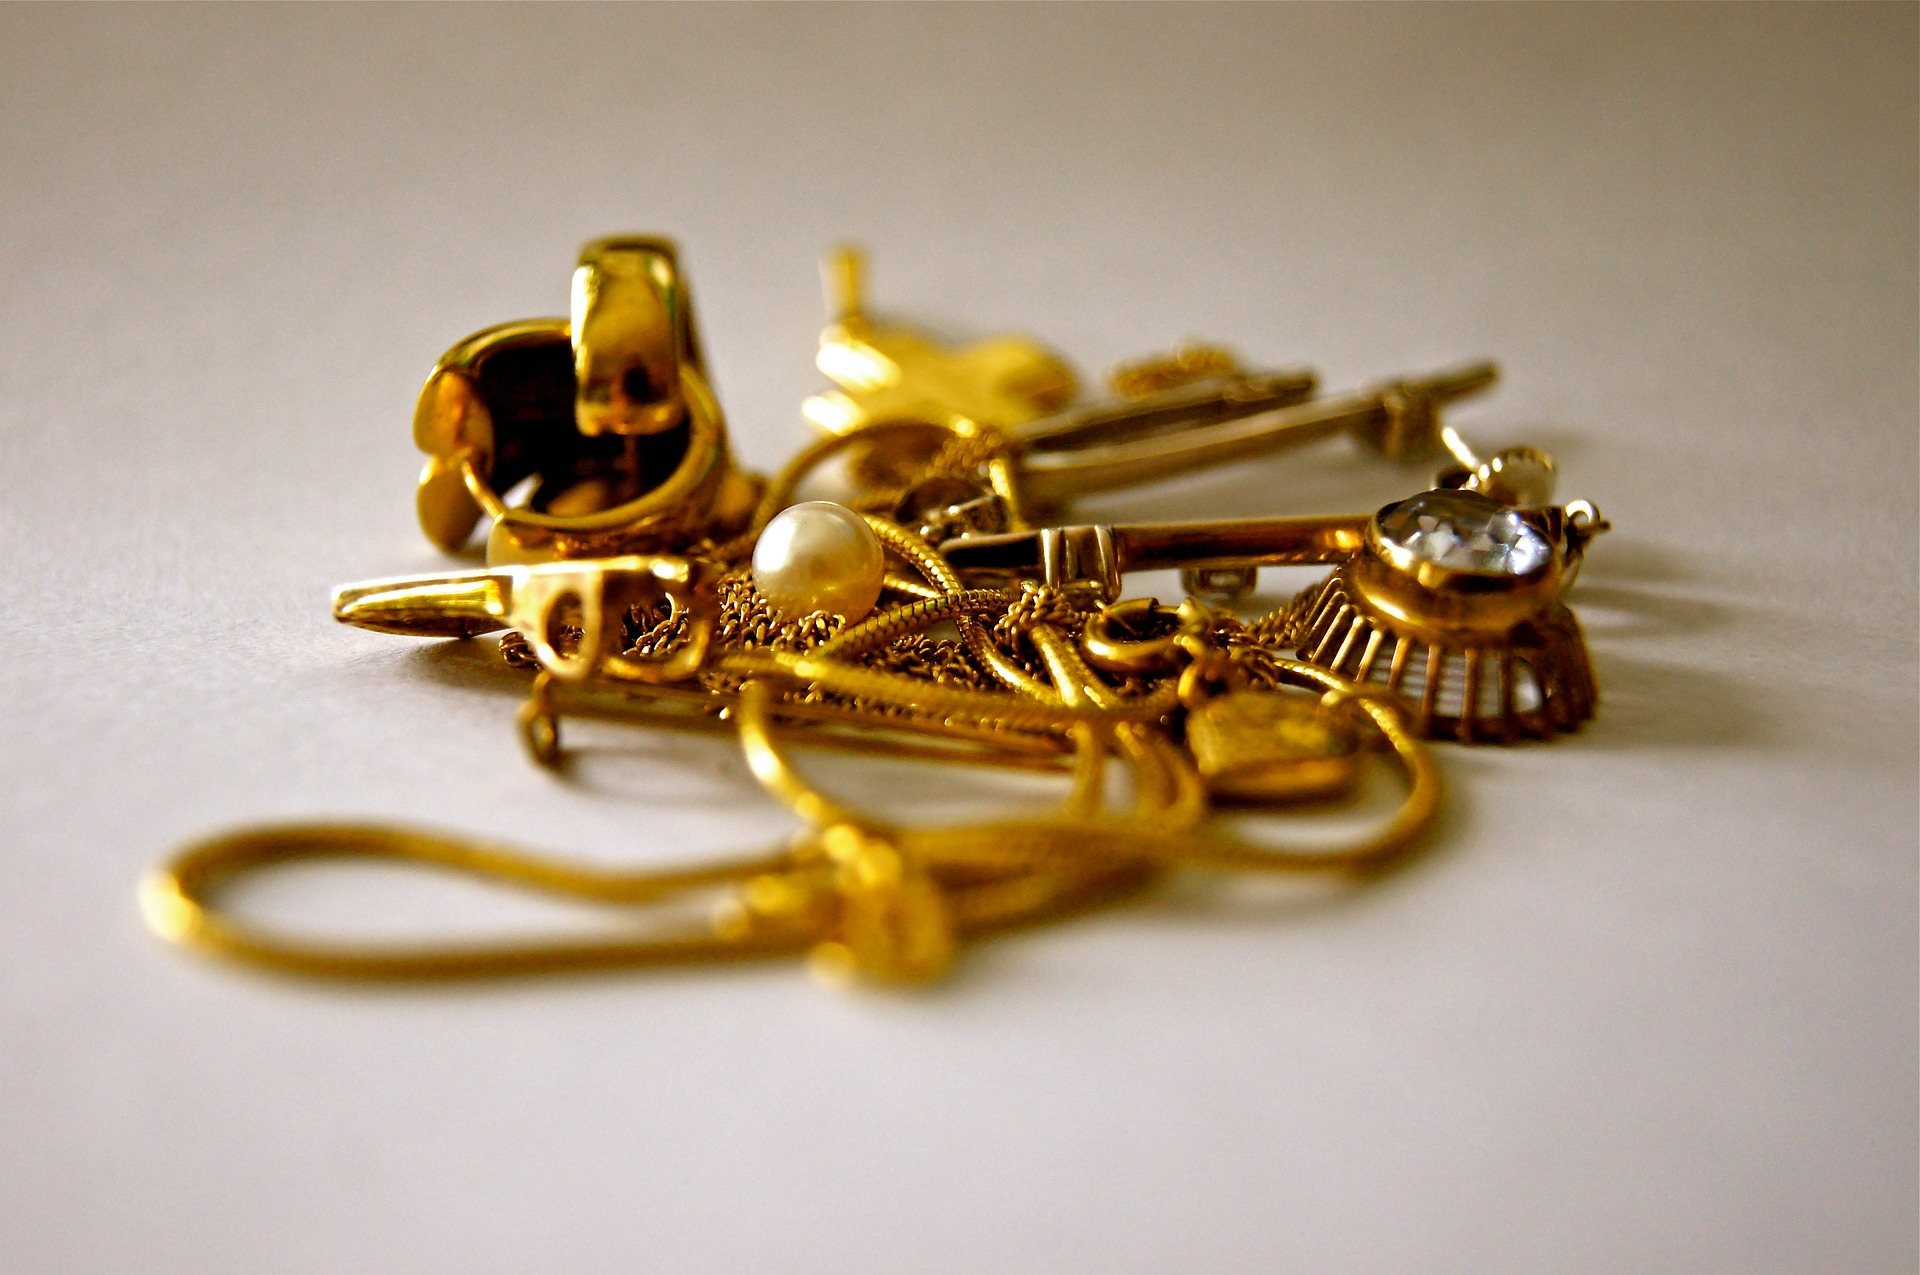 What Kind of Gold Jewelry Do You Own? Bring it in to Jewelry 'N Loan